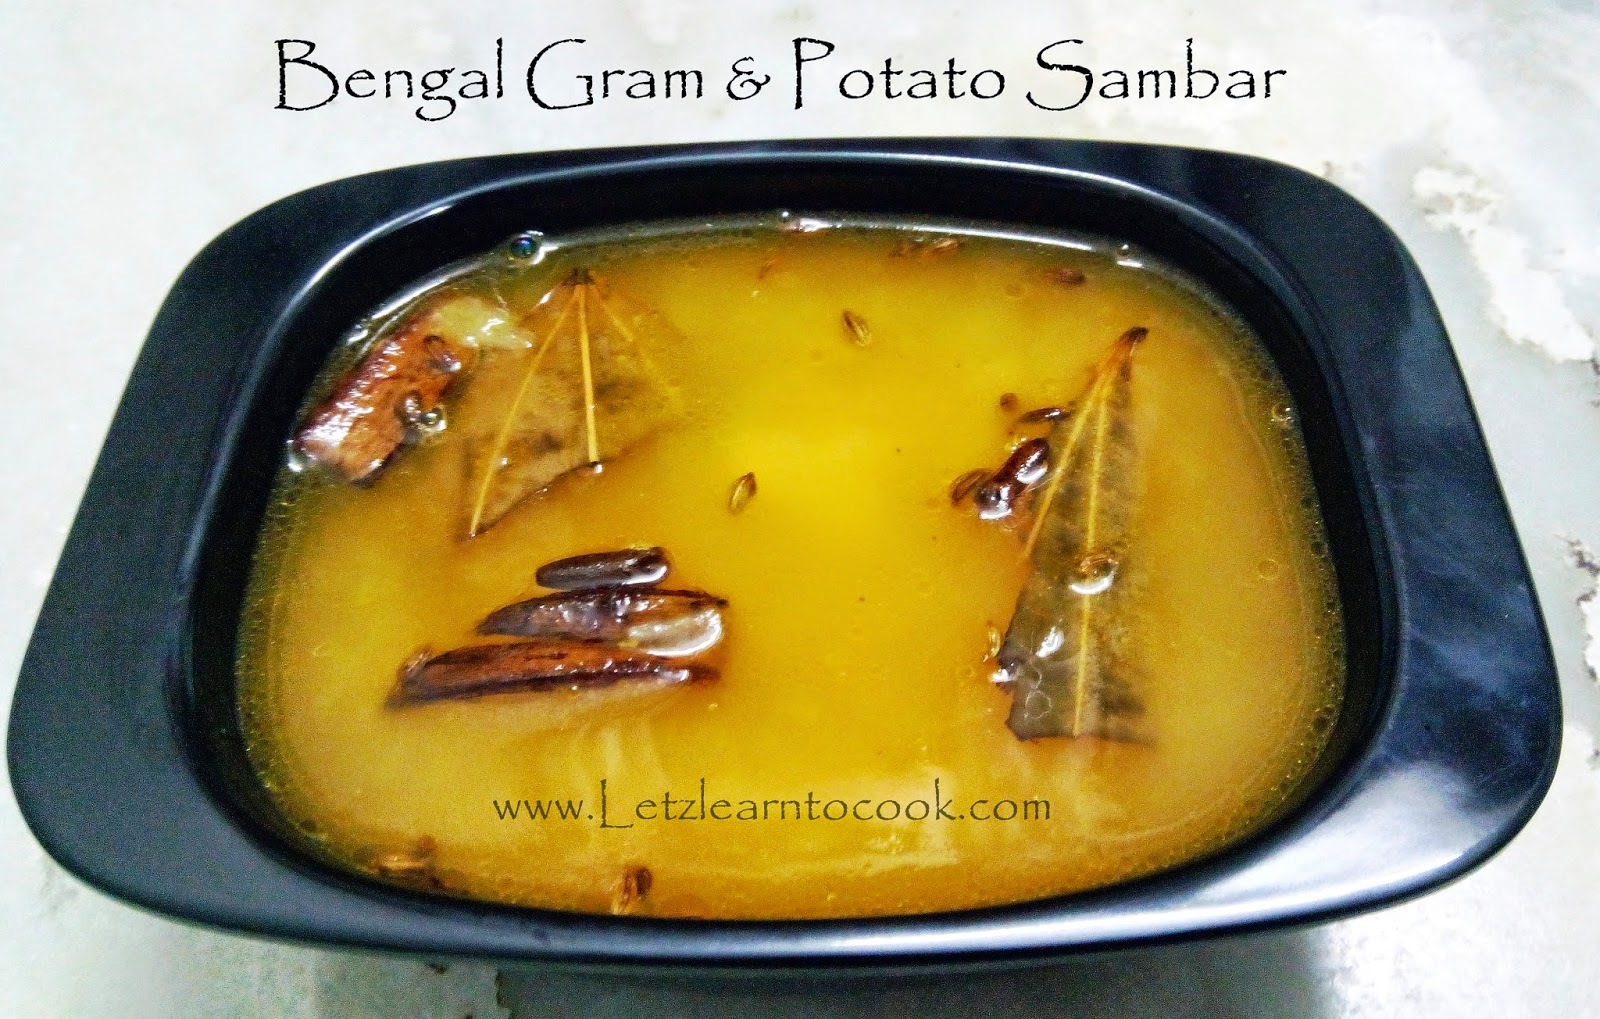 Bengal Gram Potato Sambar For Idly/Dosa